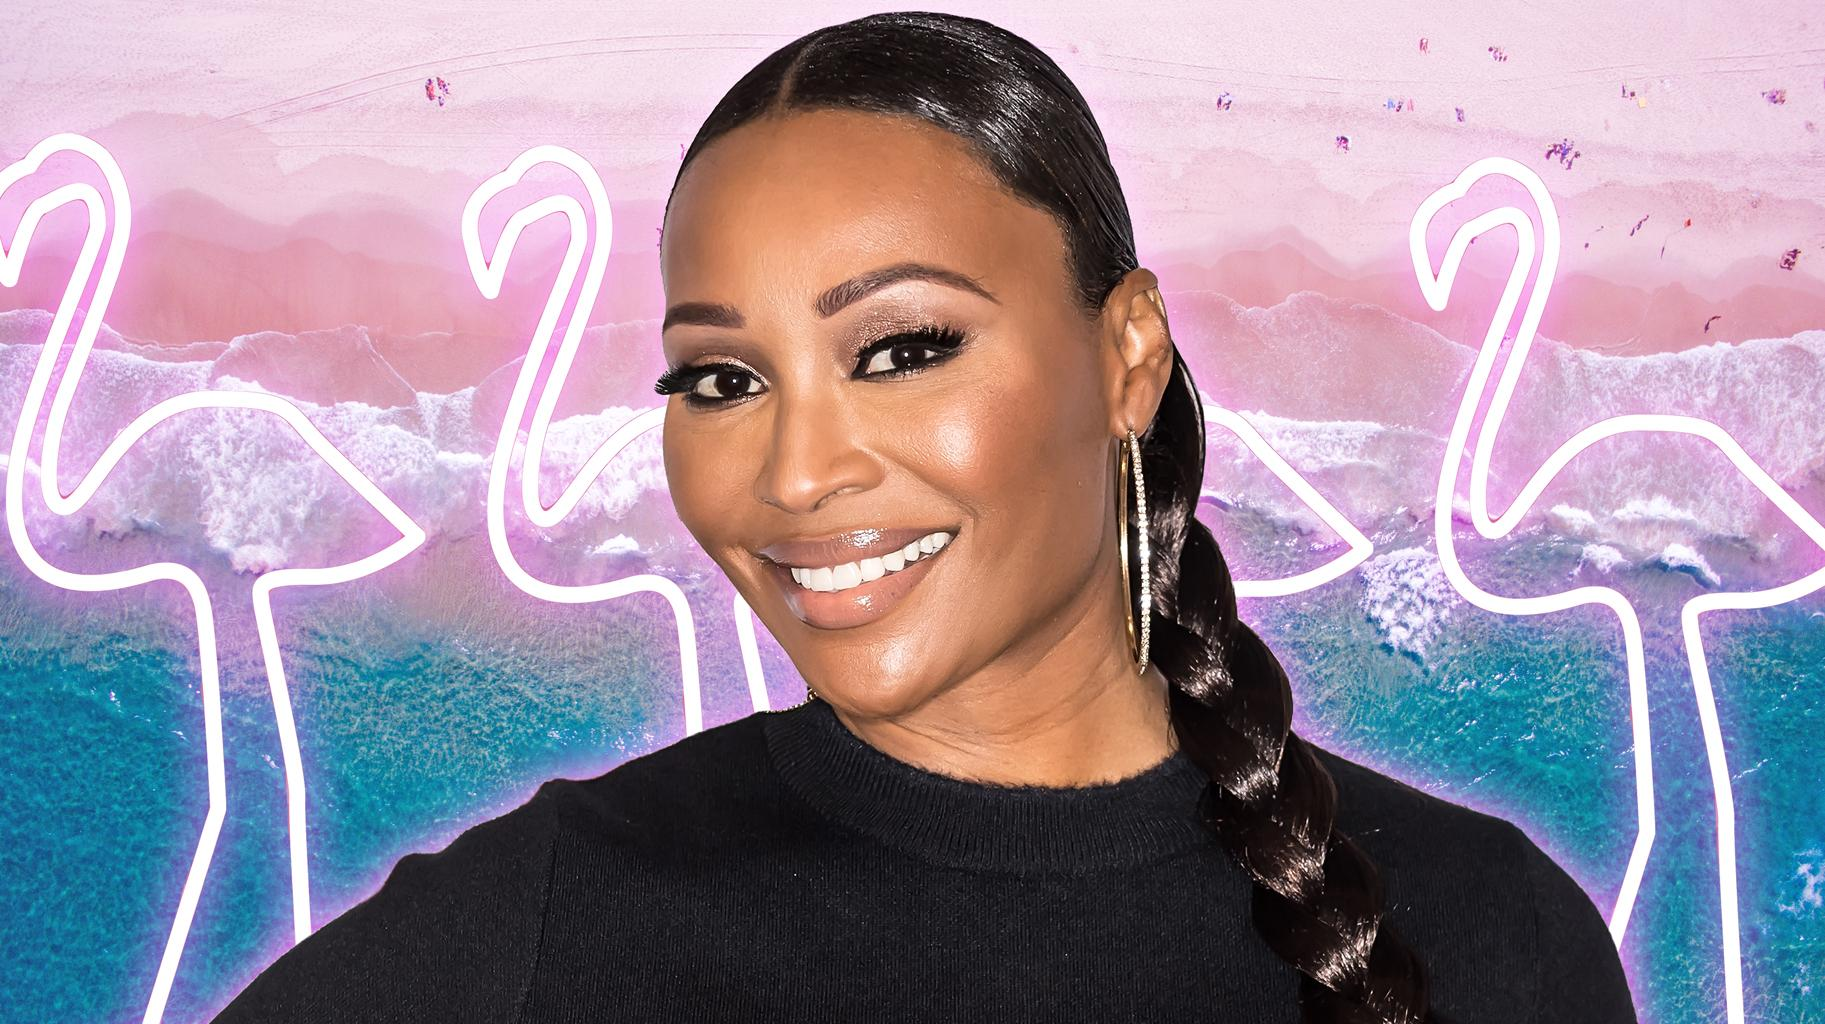 Cynthia Bailey Shares Throwback Photos From Magazine Covers And Haters Accuse Her Of Using Satanic Symbols